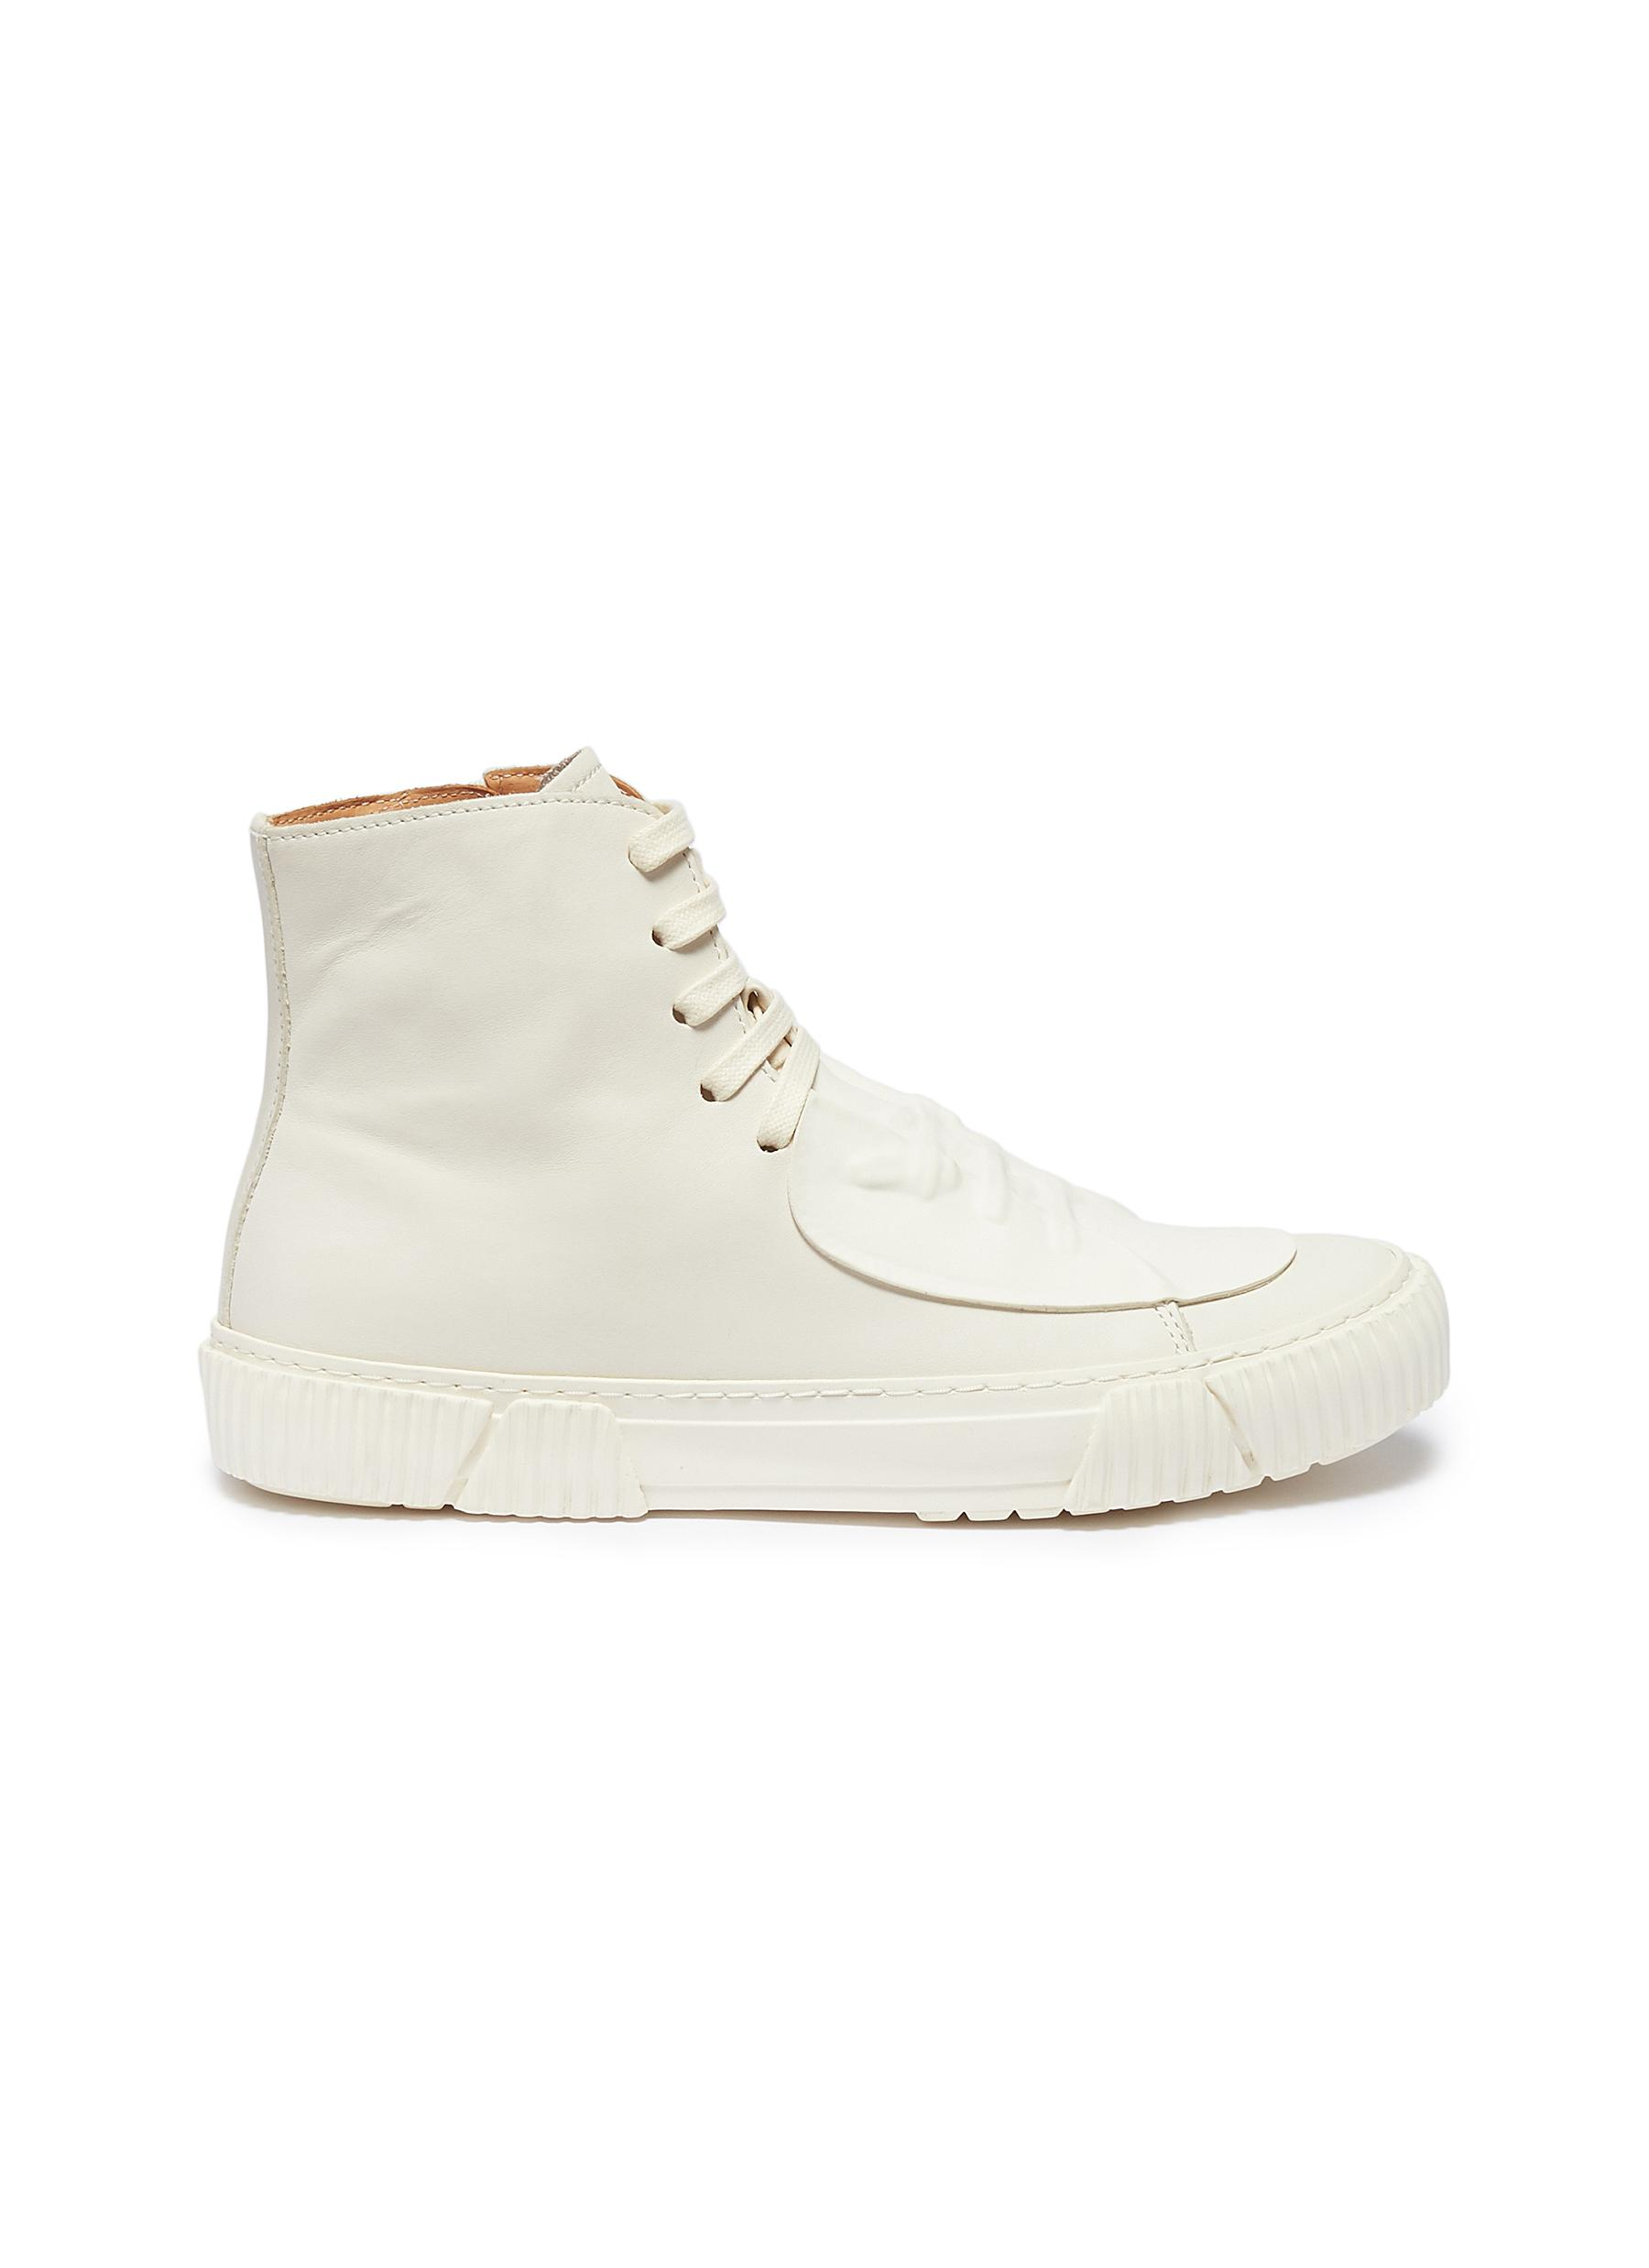 Photo of Rubber patch leather high top sneakers by both womens shoes - buy both footwear online